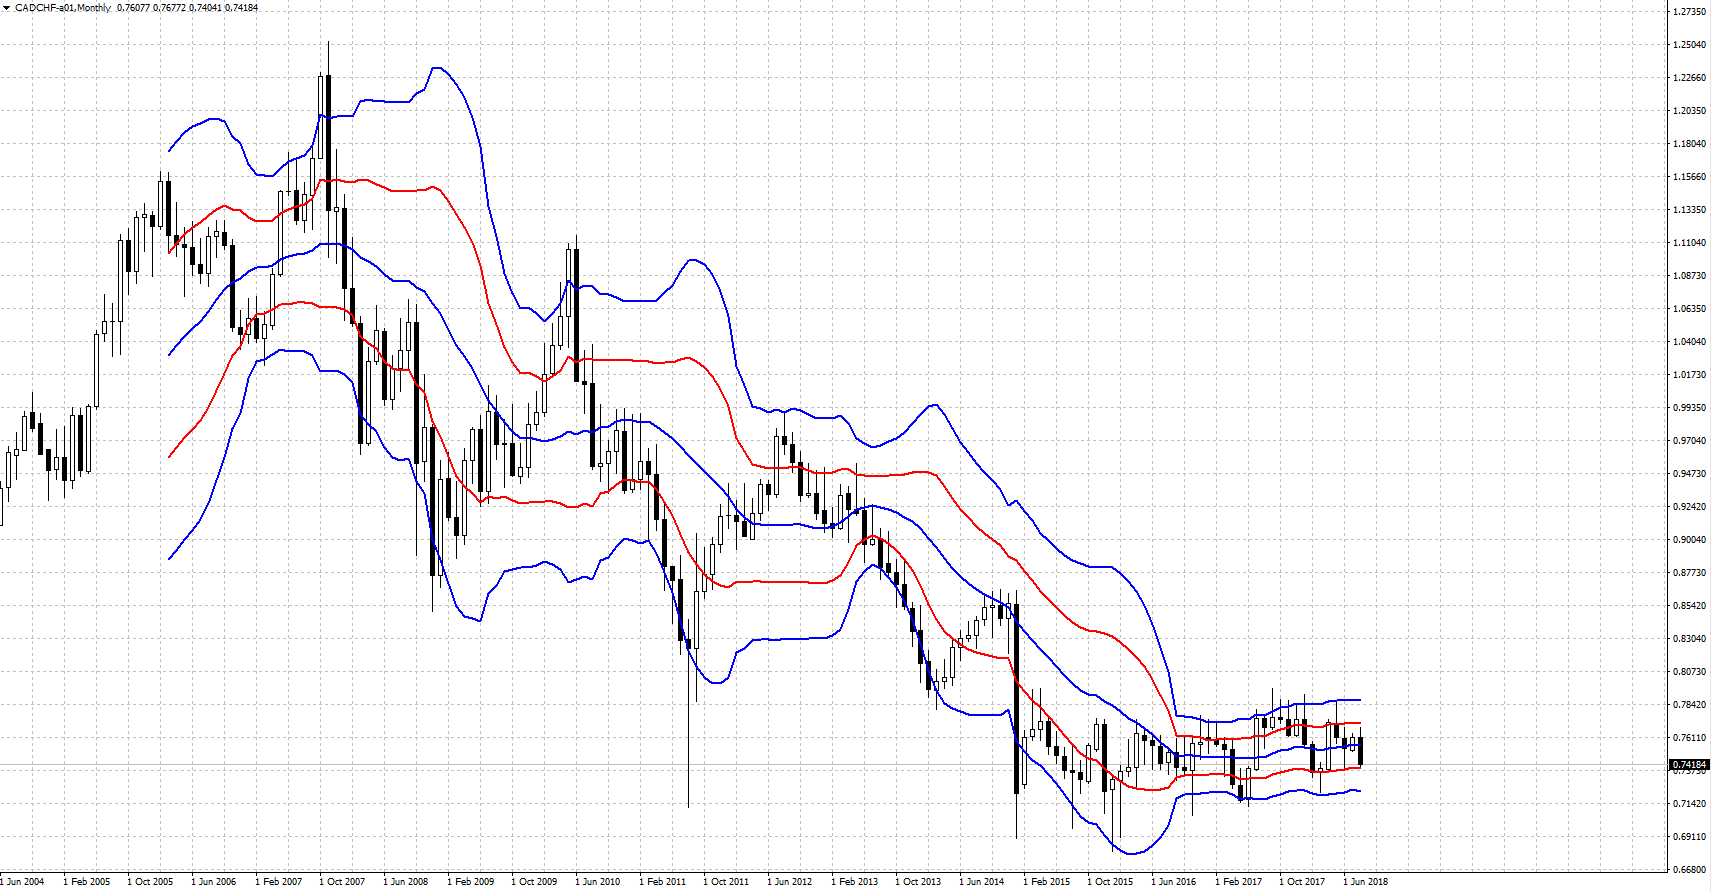 CADCHF-201808.PNG